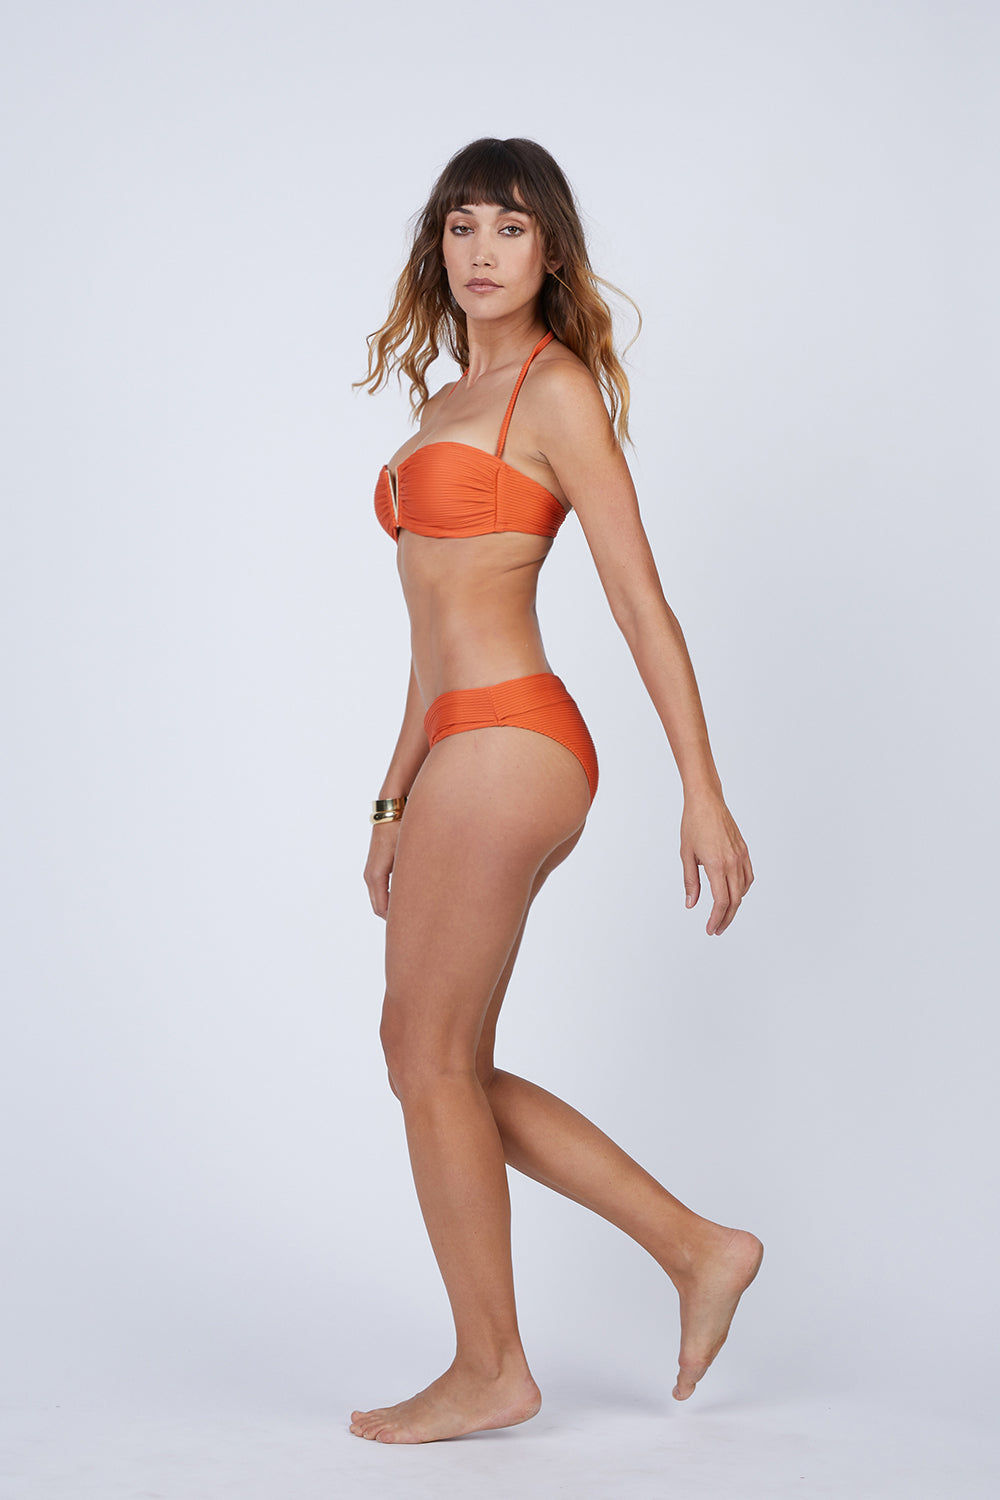 HEIDI KLEIN V Padded Bandeau Bikini Top - Orange Bikini Top | Orange| heidi klein V Padded Bandeau Bikini Top - Orange. Features:  Constructed with elastic stitched at neckline and bottom of cradle and boning at side seam to support cup. Removable, light foam padding. Enclosed elastic along neckline and bottom of cups to provide a close fit. Style is offered with a clasp back fastening, which locks and clicks shut into place to provide much better security. Always offered with removable halter neck straps for alternative styling and extra support. Front View